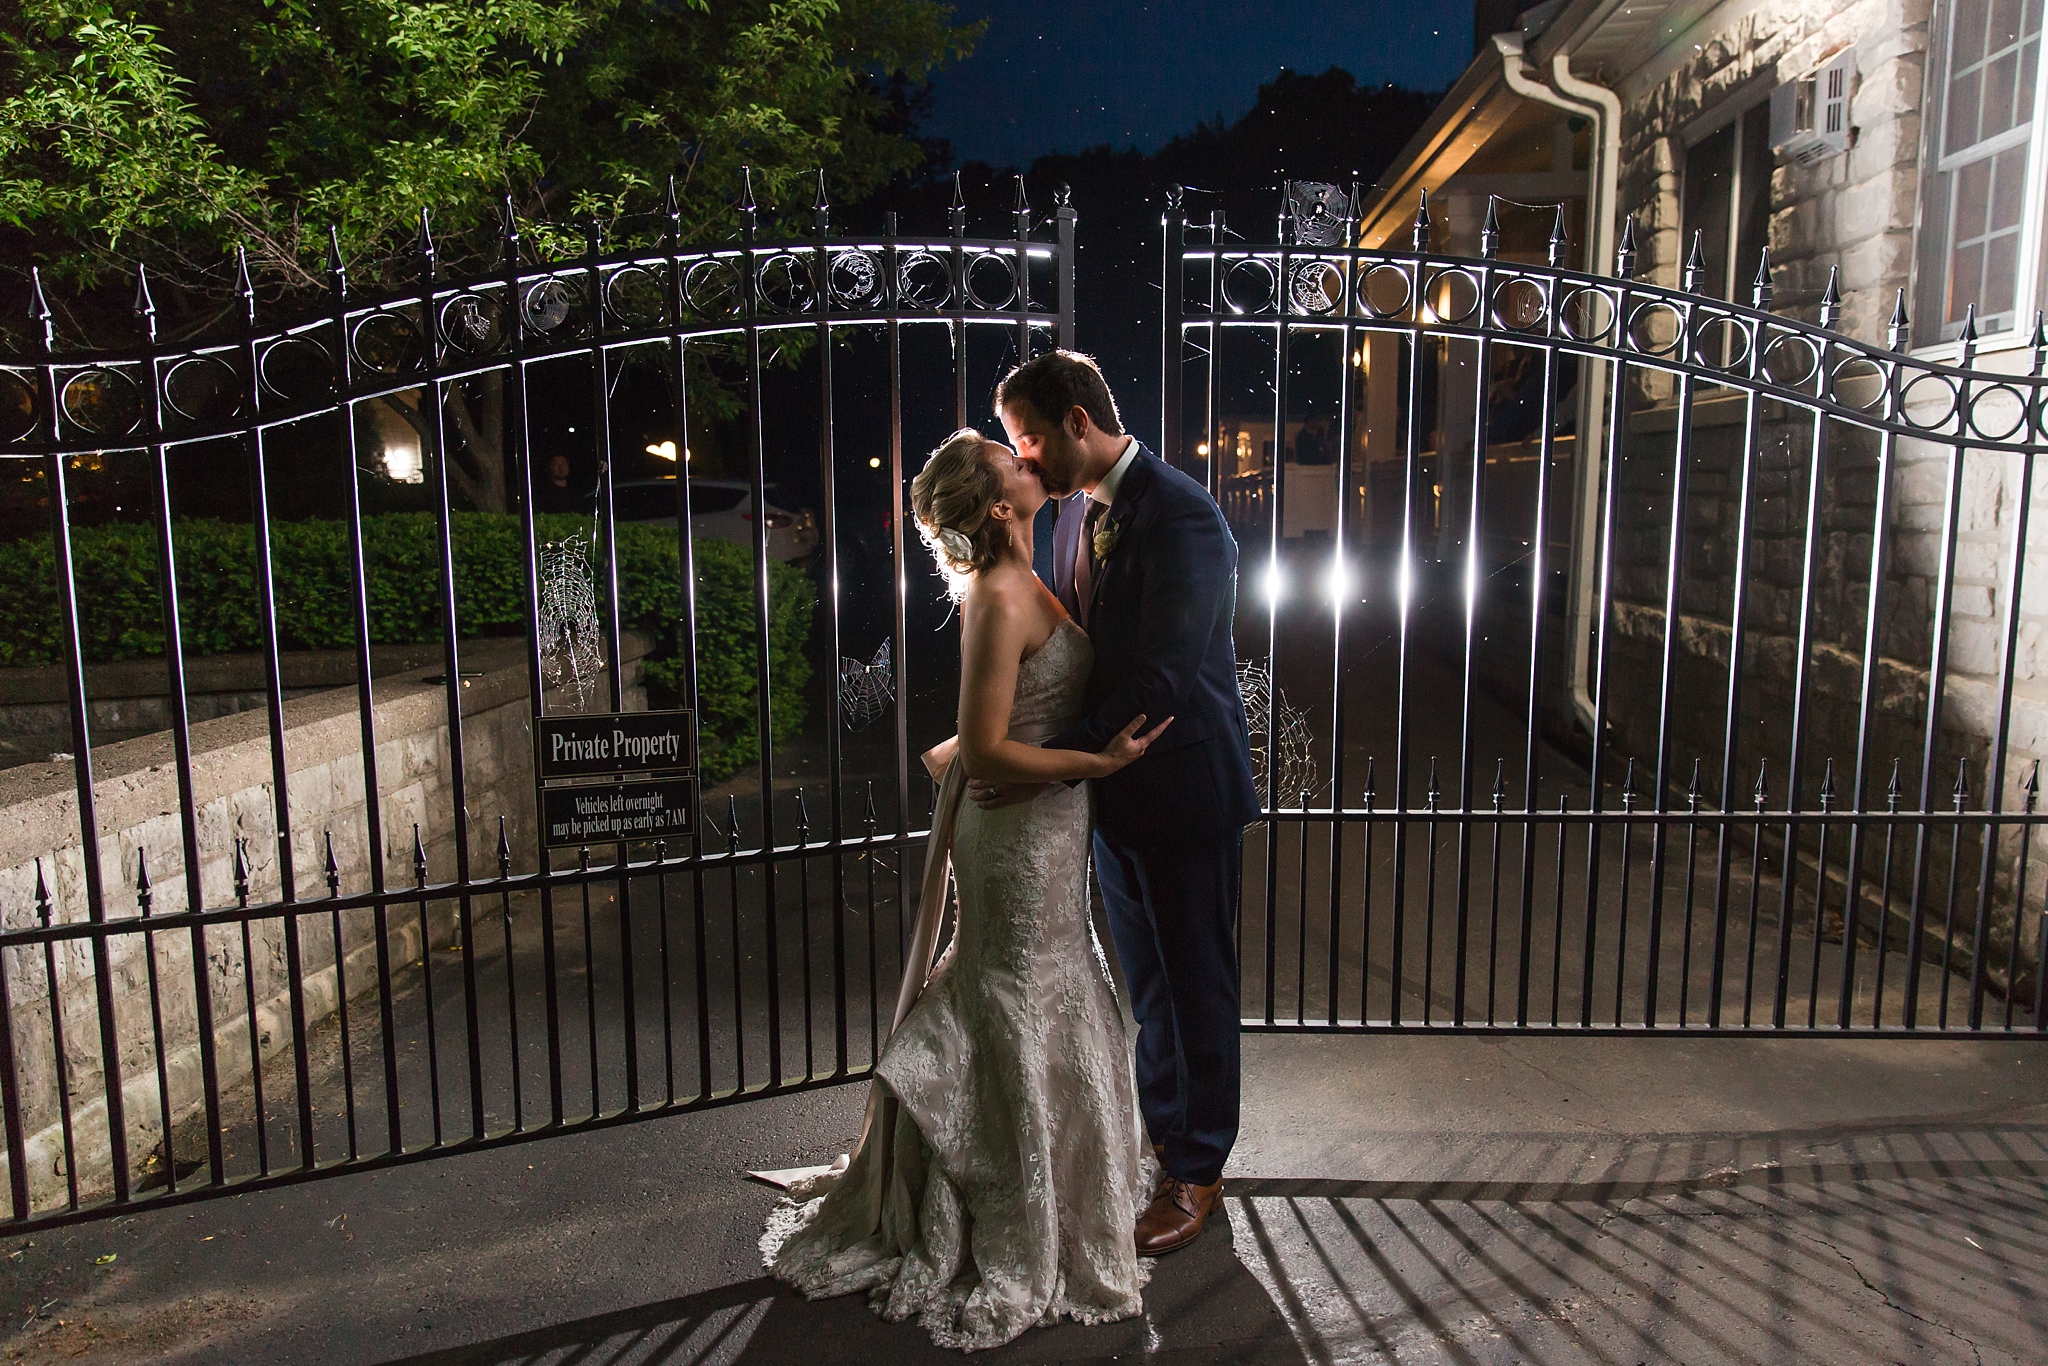 fun-candid-laid-back-wedding-photos-at-wellers-carriage-house-in-saline-michigan-and-at-the-eagle-crest-golf-resort-by-courtney-carolyn-photography_0097.jpg